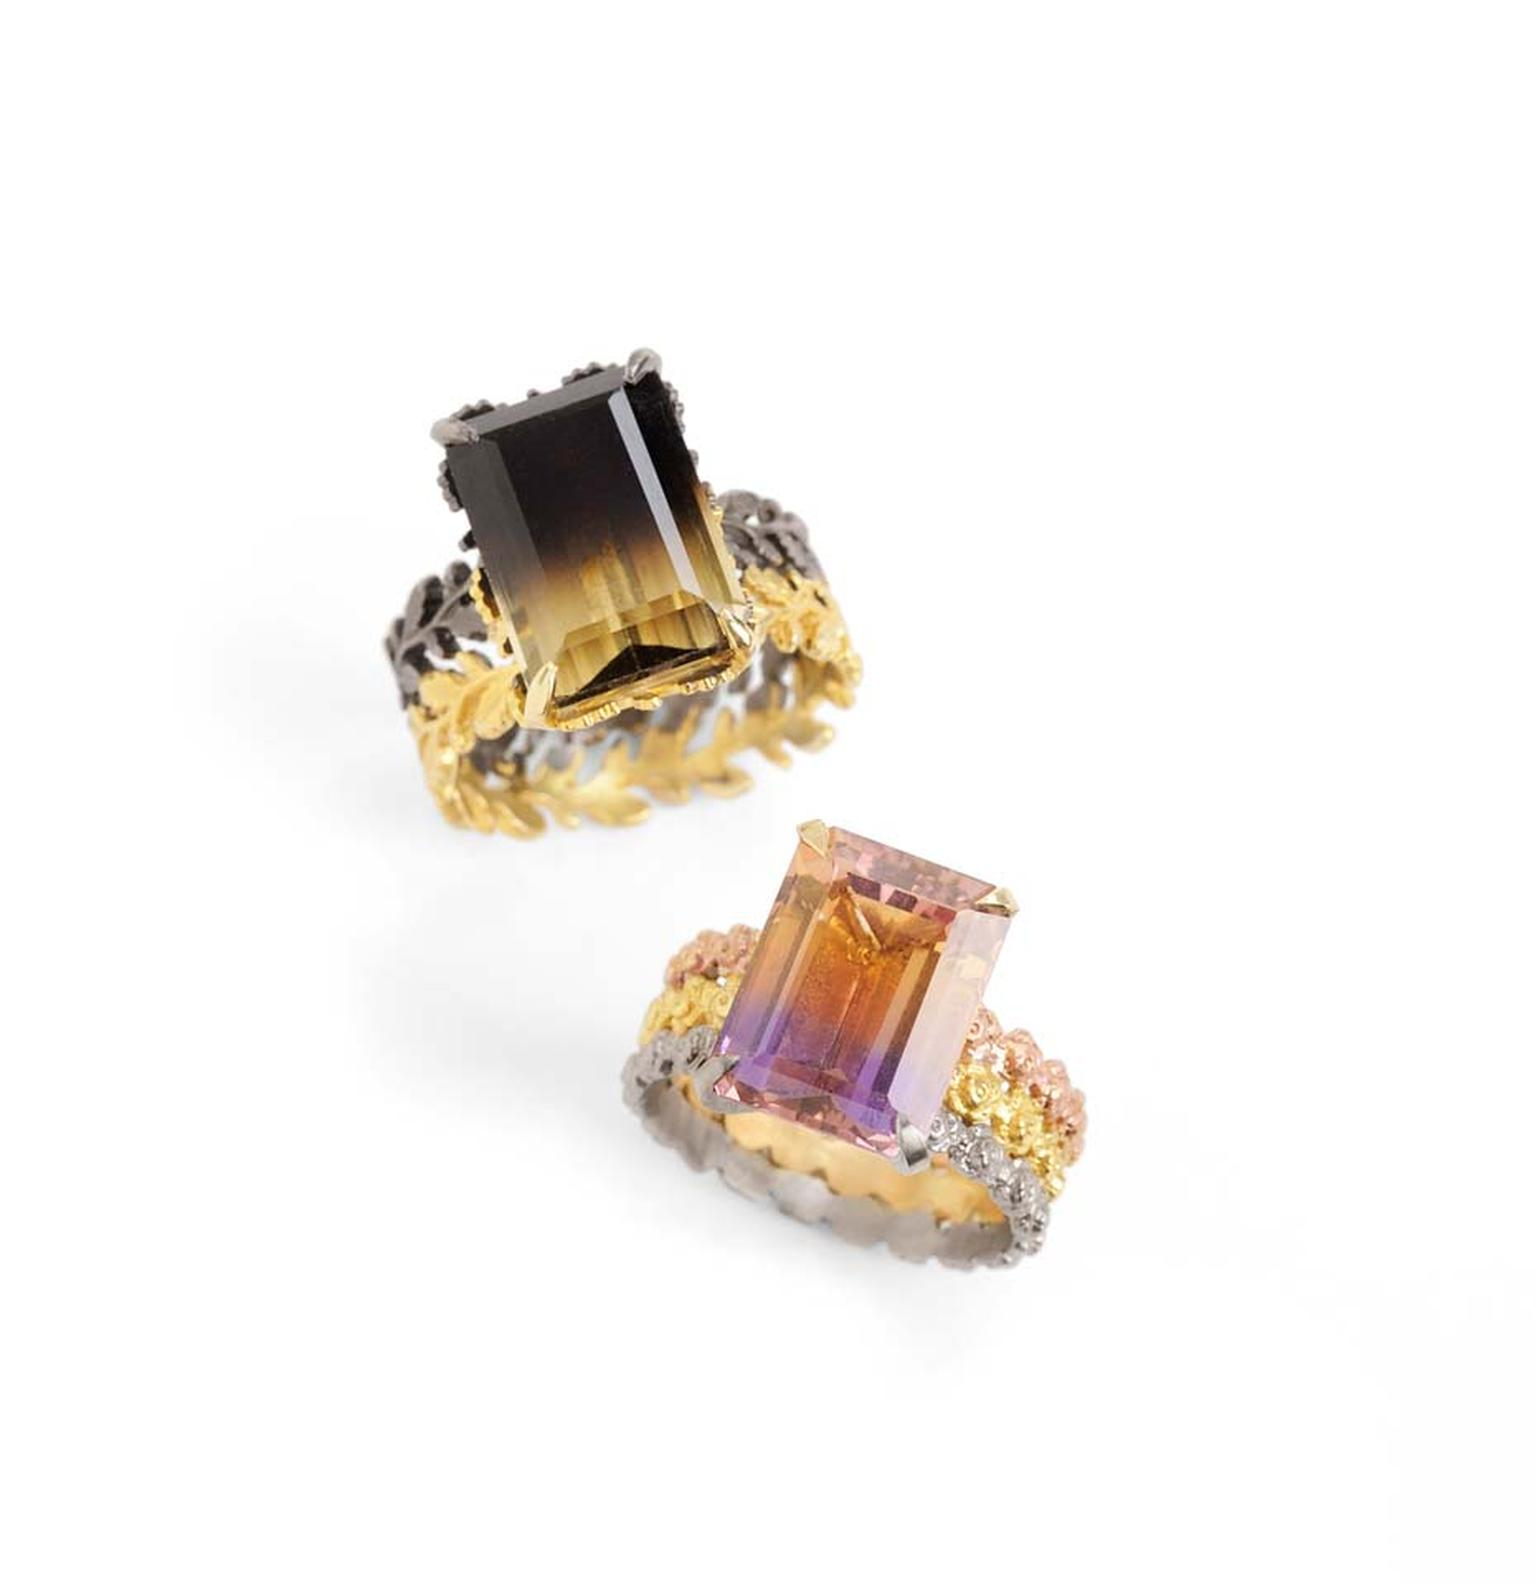 Beth Gilmour Dichroma Rings in various golds, claw-set with bi-coloured quartz and bi-coloured Ametrine (left: £4,500; right: £3,000)